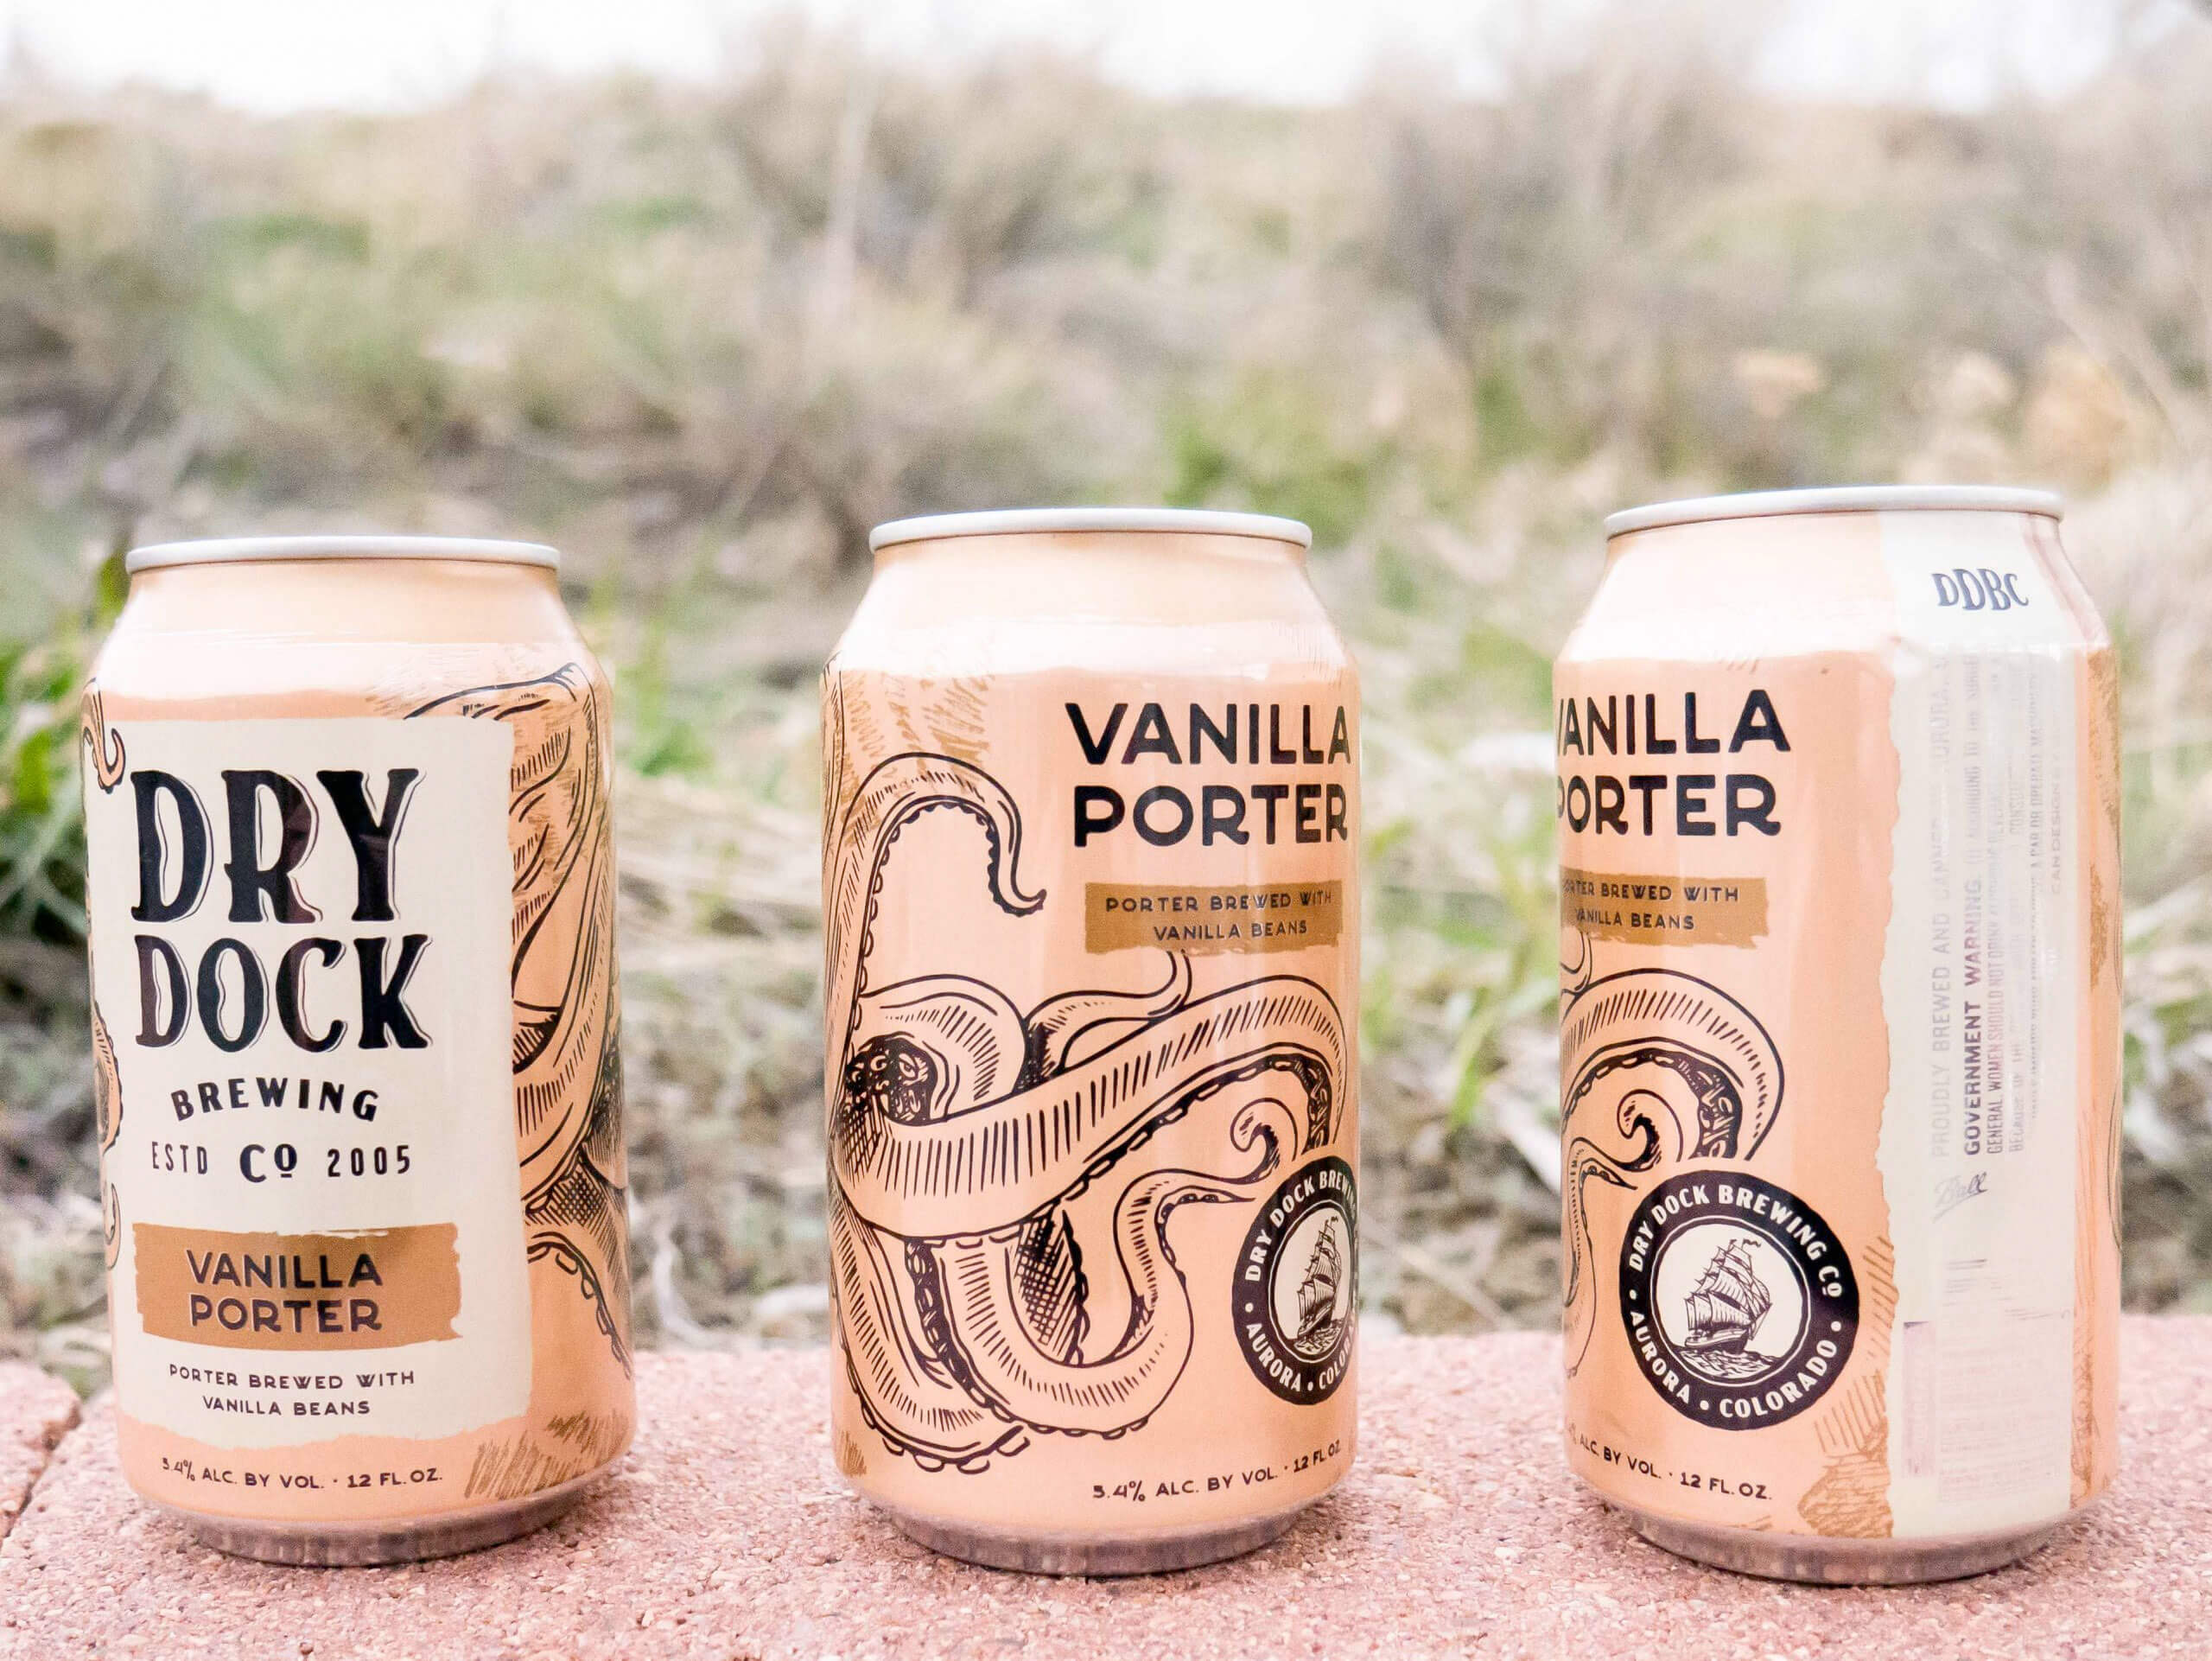 Redesigned cans of the Vanilla Porter by Dry Dock Brewing Company